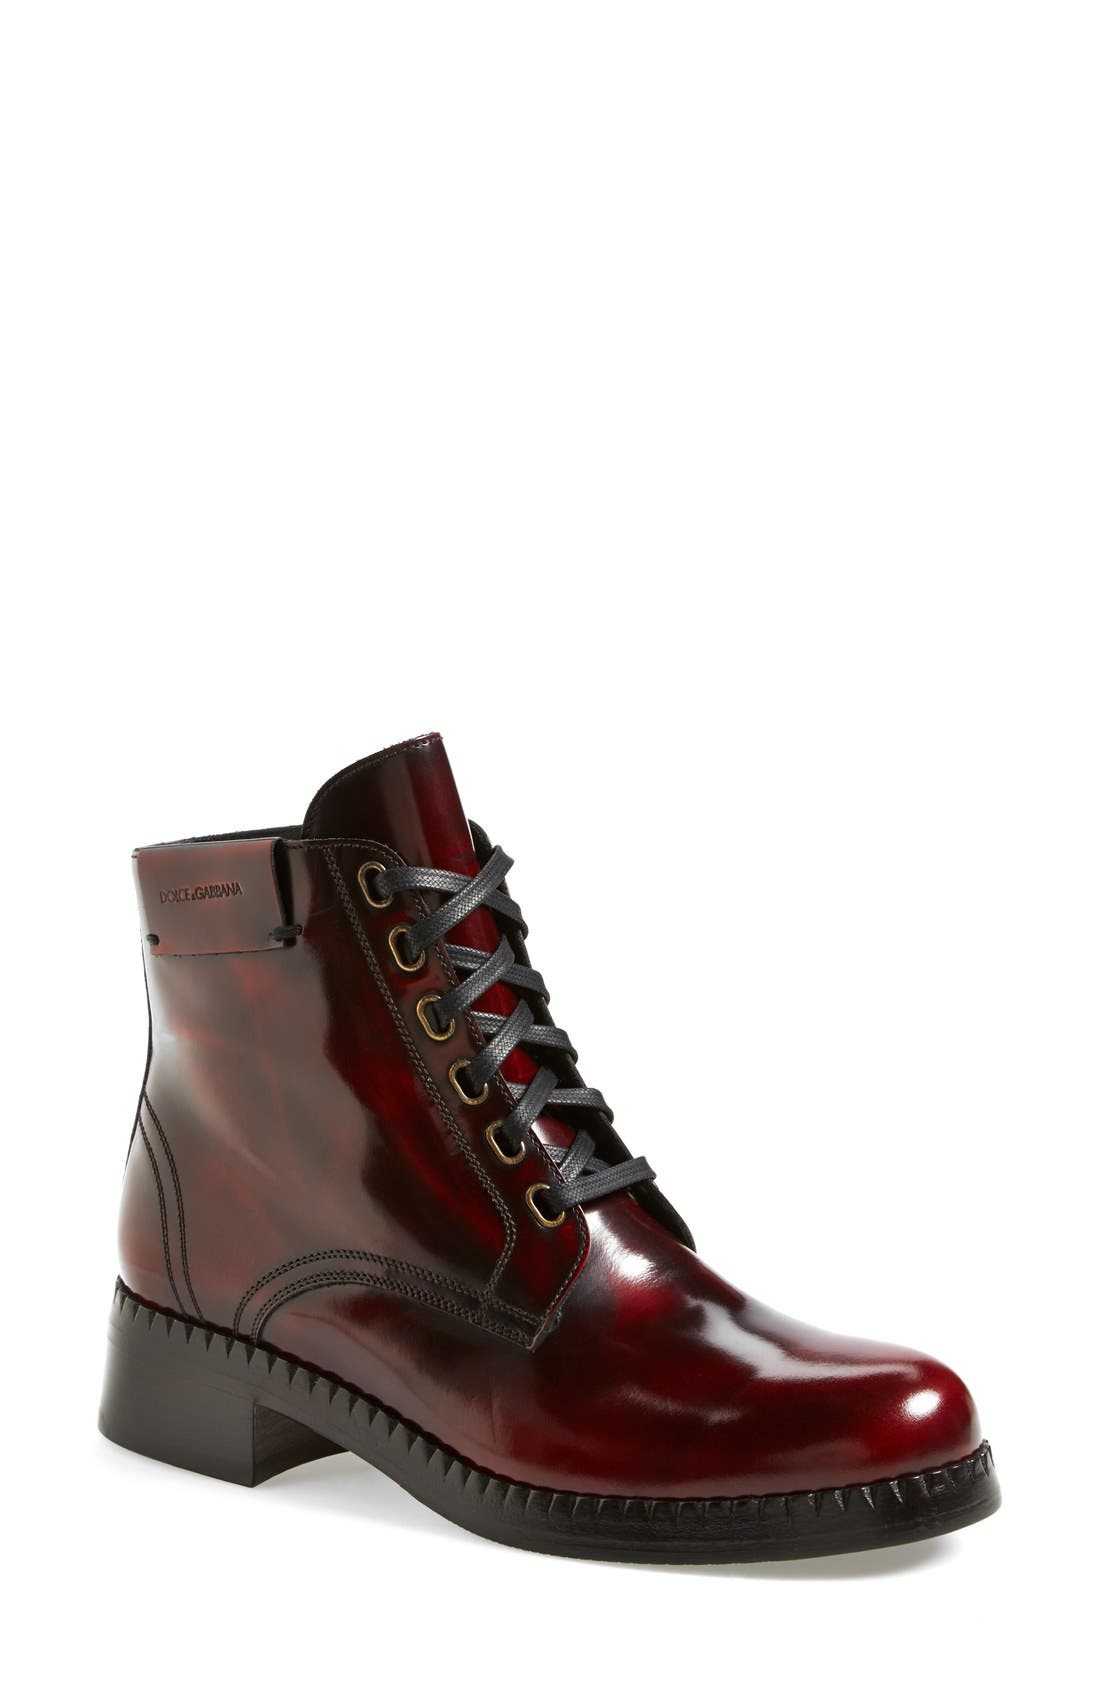 Alternate Image 1 Selected - Dolce&Gabbana Lace-Up Ankle Boot (Women)